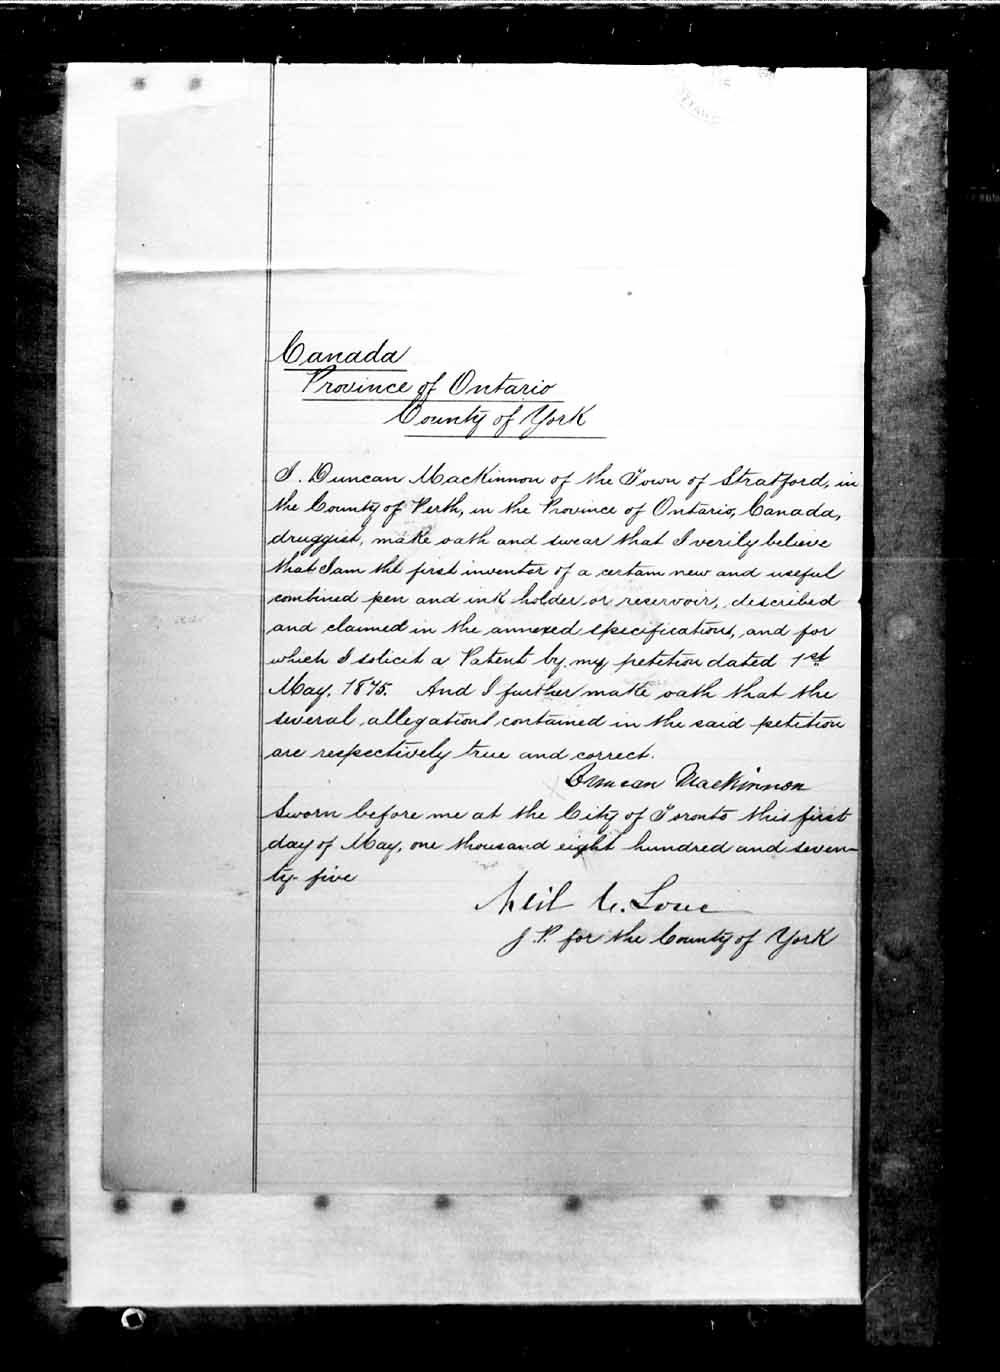 Digitized page of Canadian Patents, 1869-1919 for Image No.: e003263090